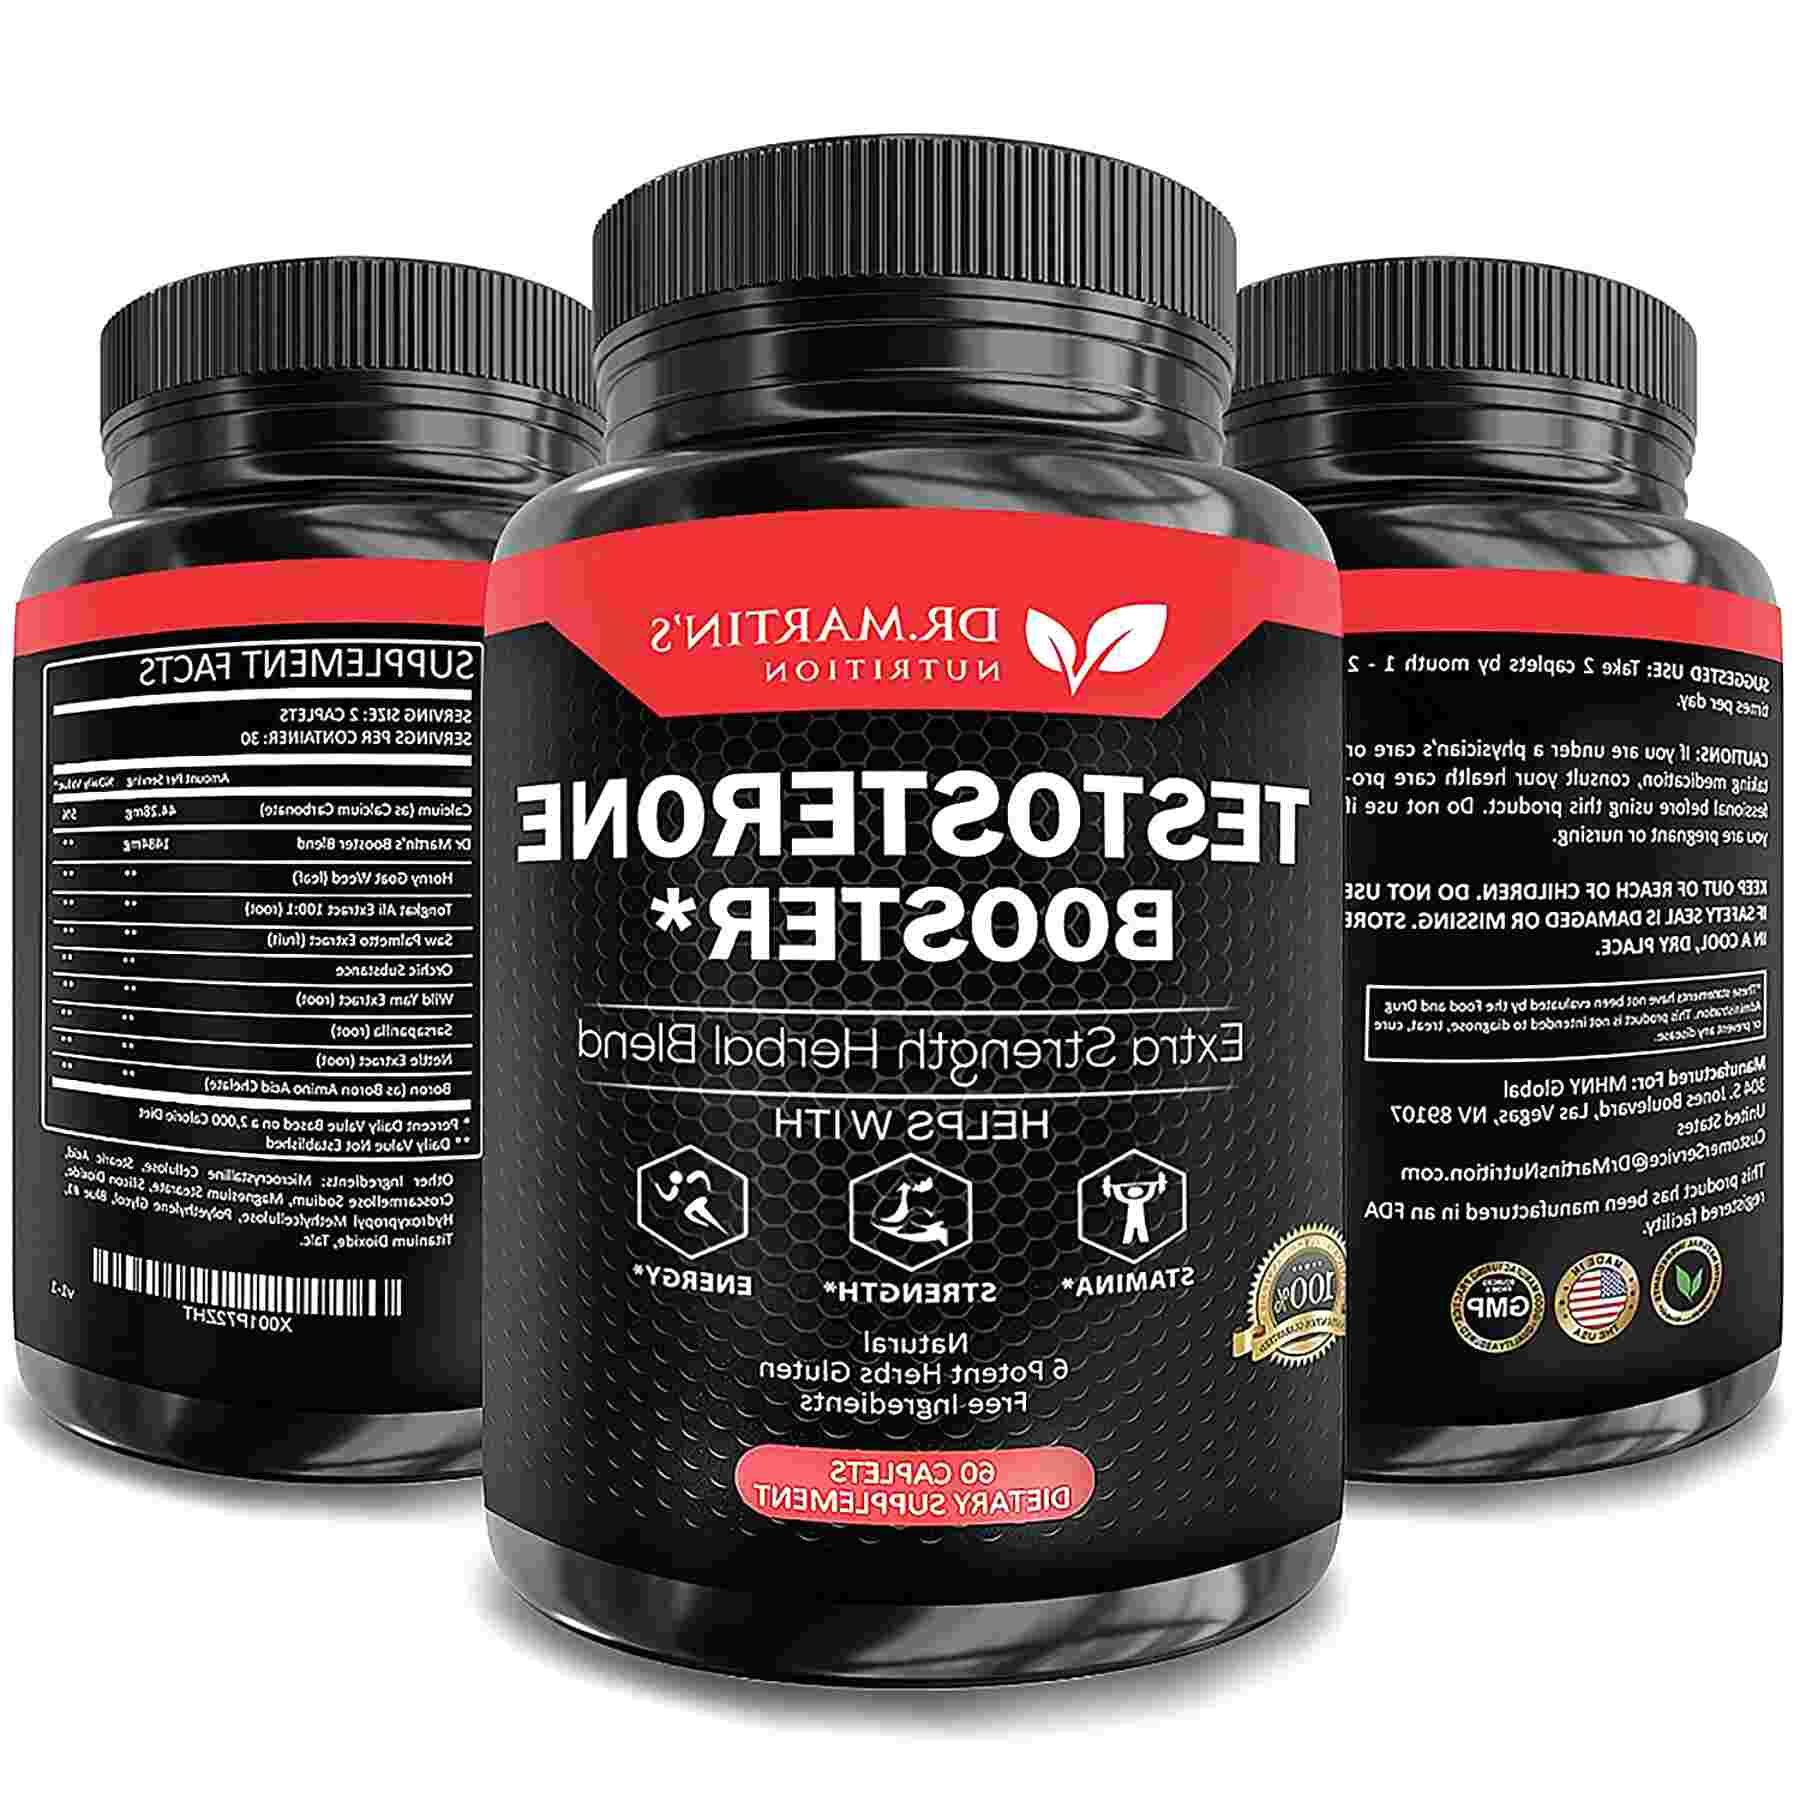 Testosterone Booster for sale in UK View 58 bargains